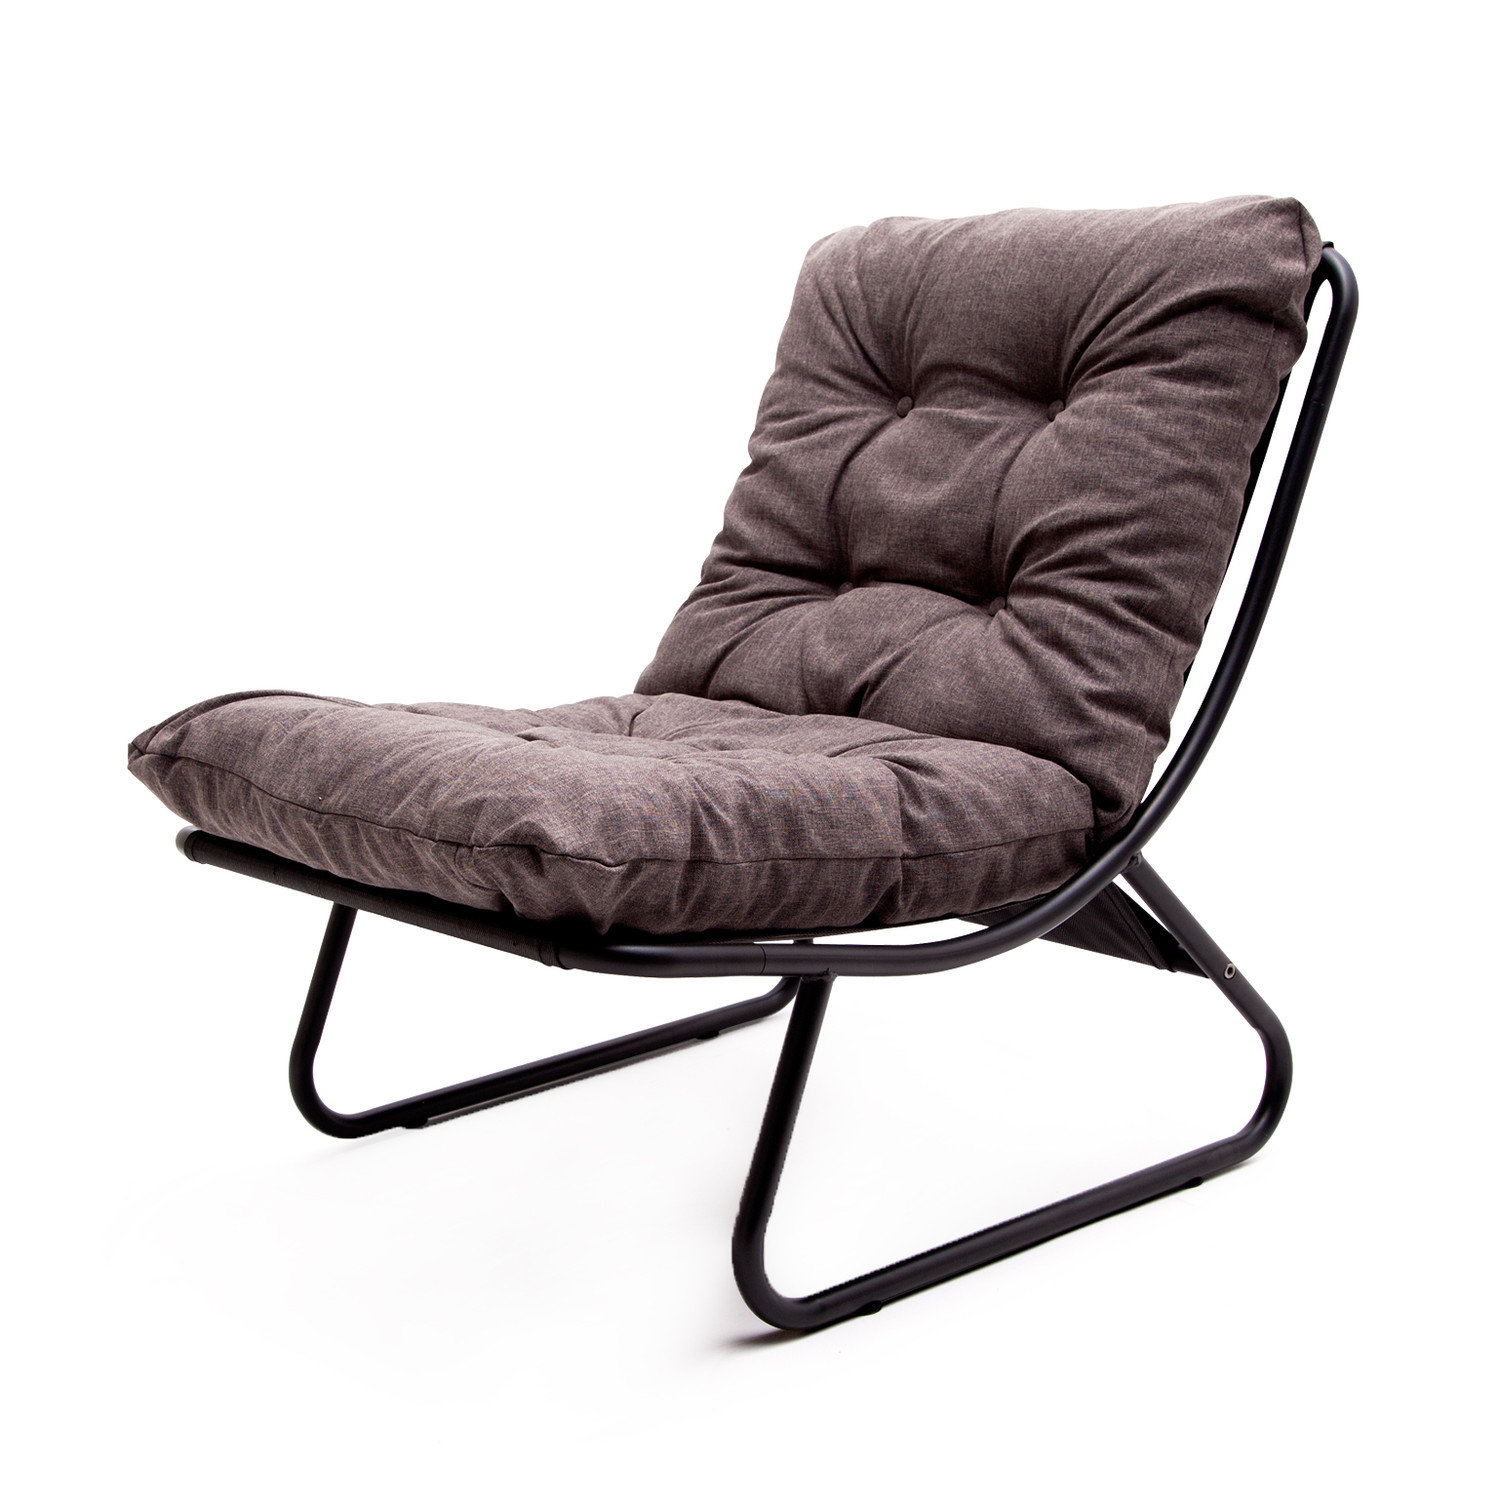 Exceptional The Cushy Comfort Chair